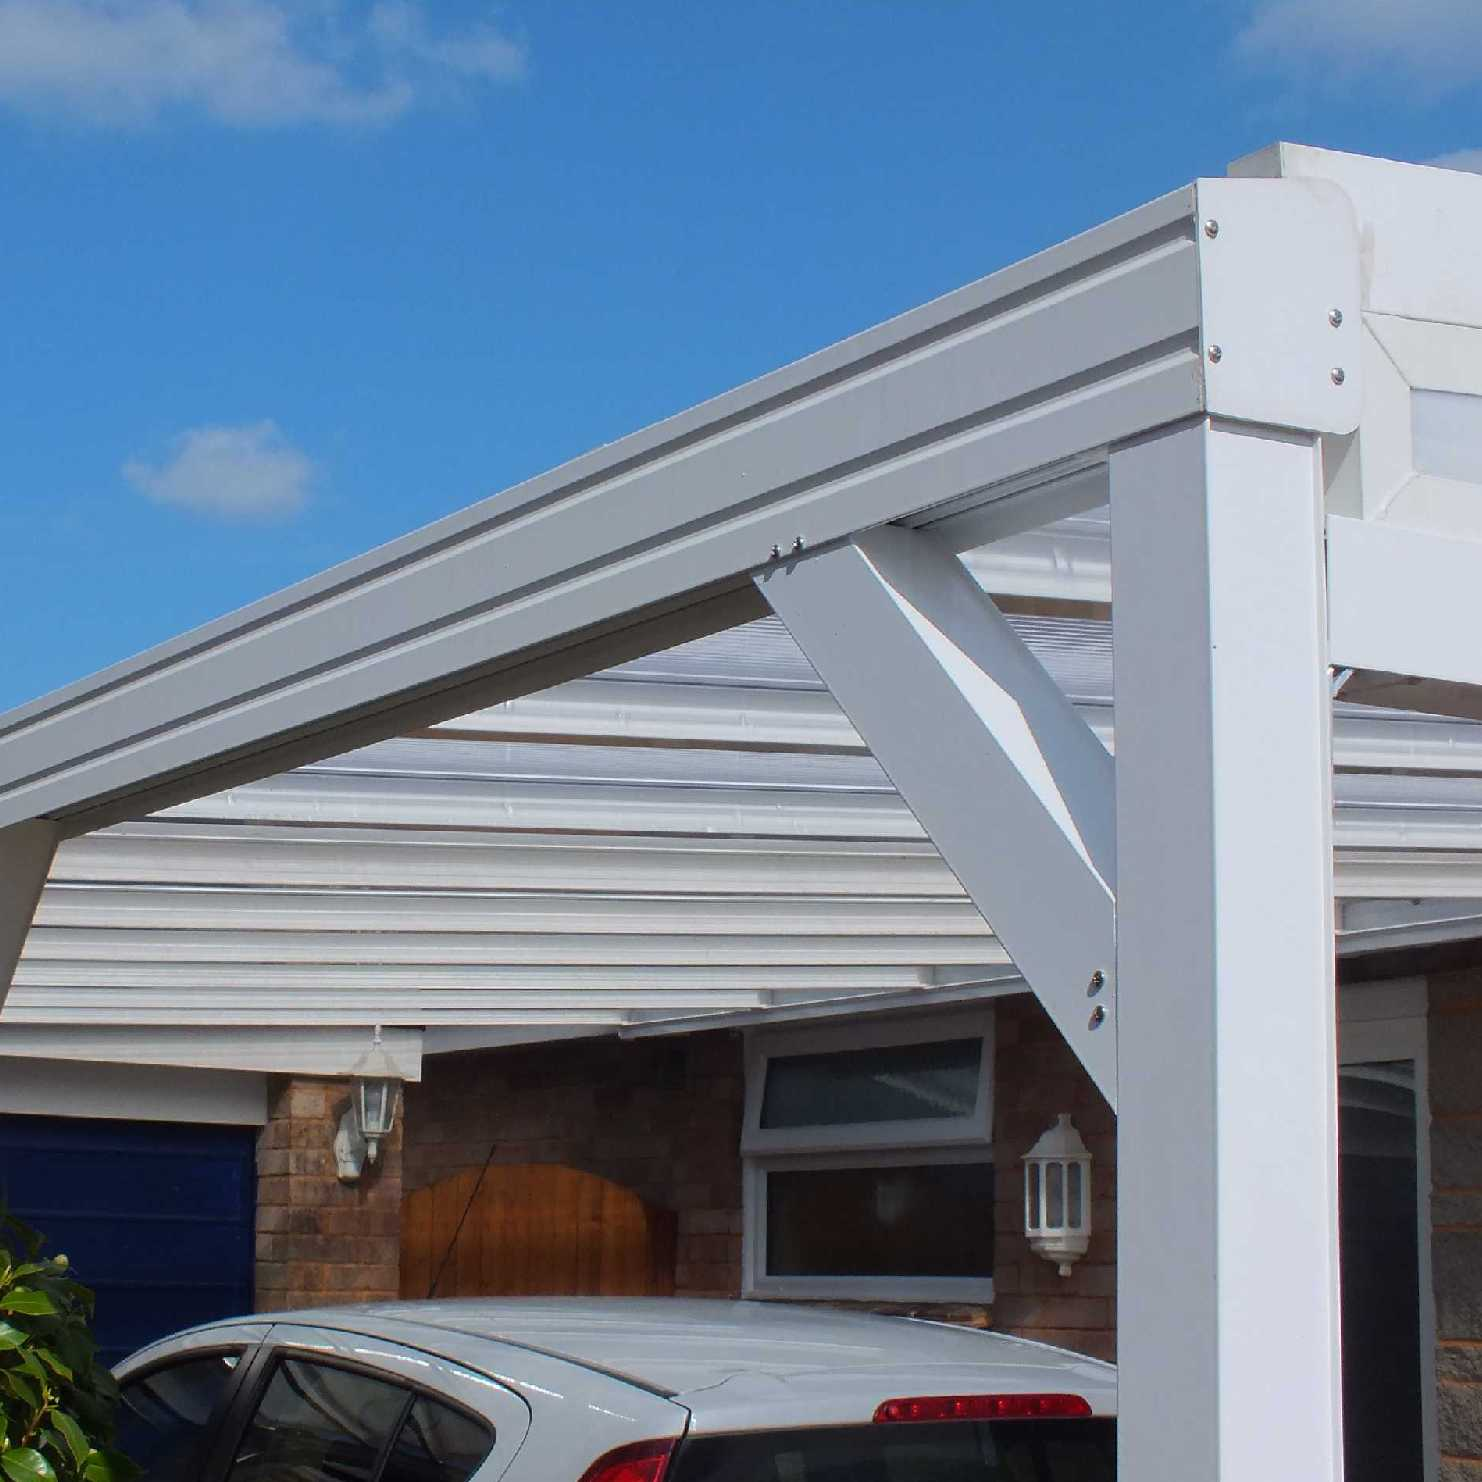 Great deals on Omega Smart White Lean-To Canopy with 16mm Polycarbonate Glazing - 8.4m (W) x 1.5m (P), (4) Supporting Posts